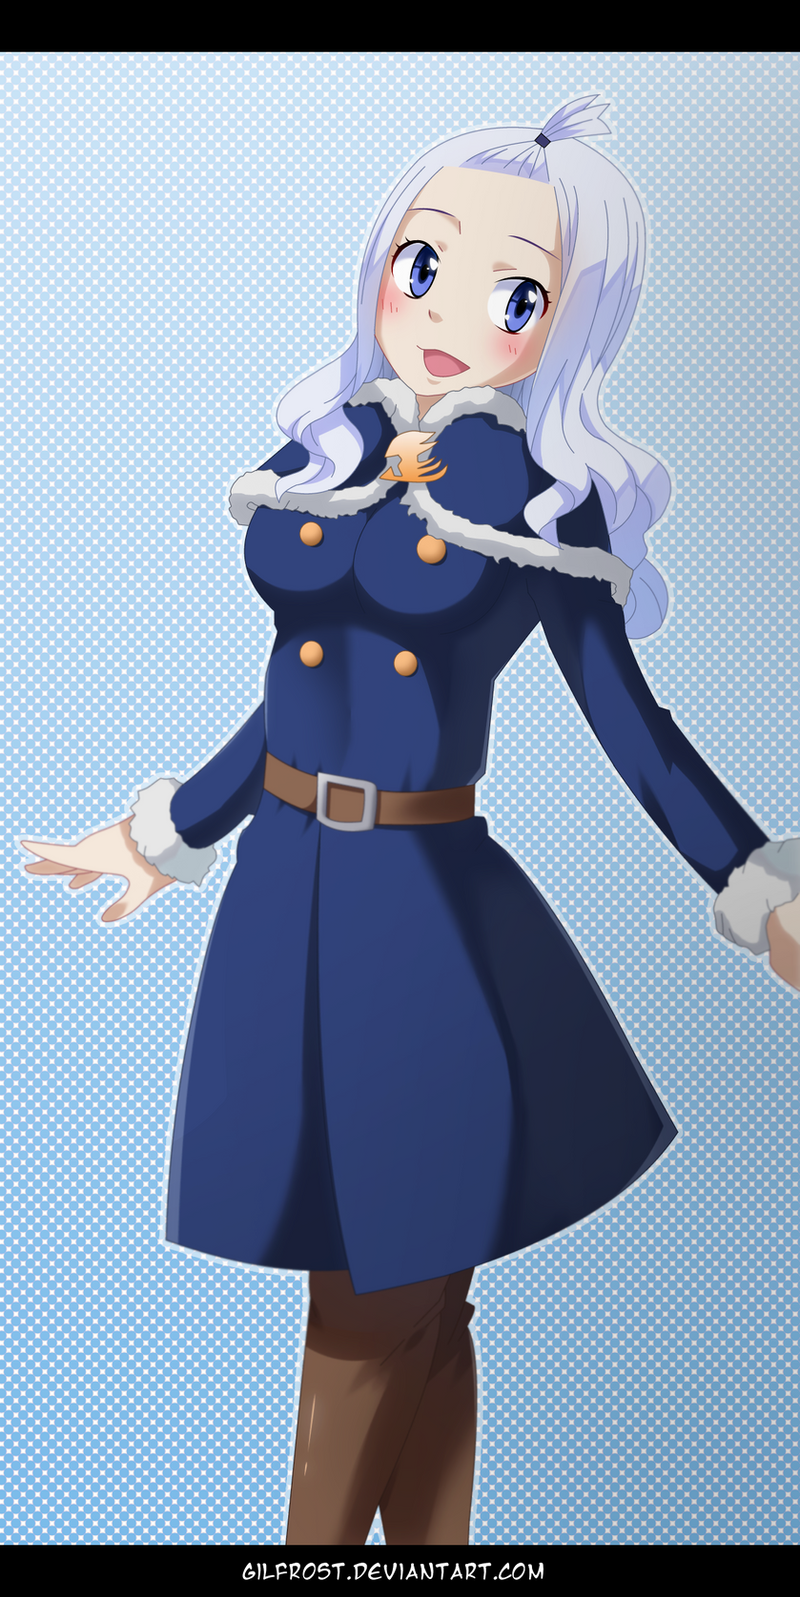 Mirajane juvia clothes by gilfrost on deviantart - Fairy tail mirajane sexy ...